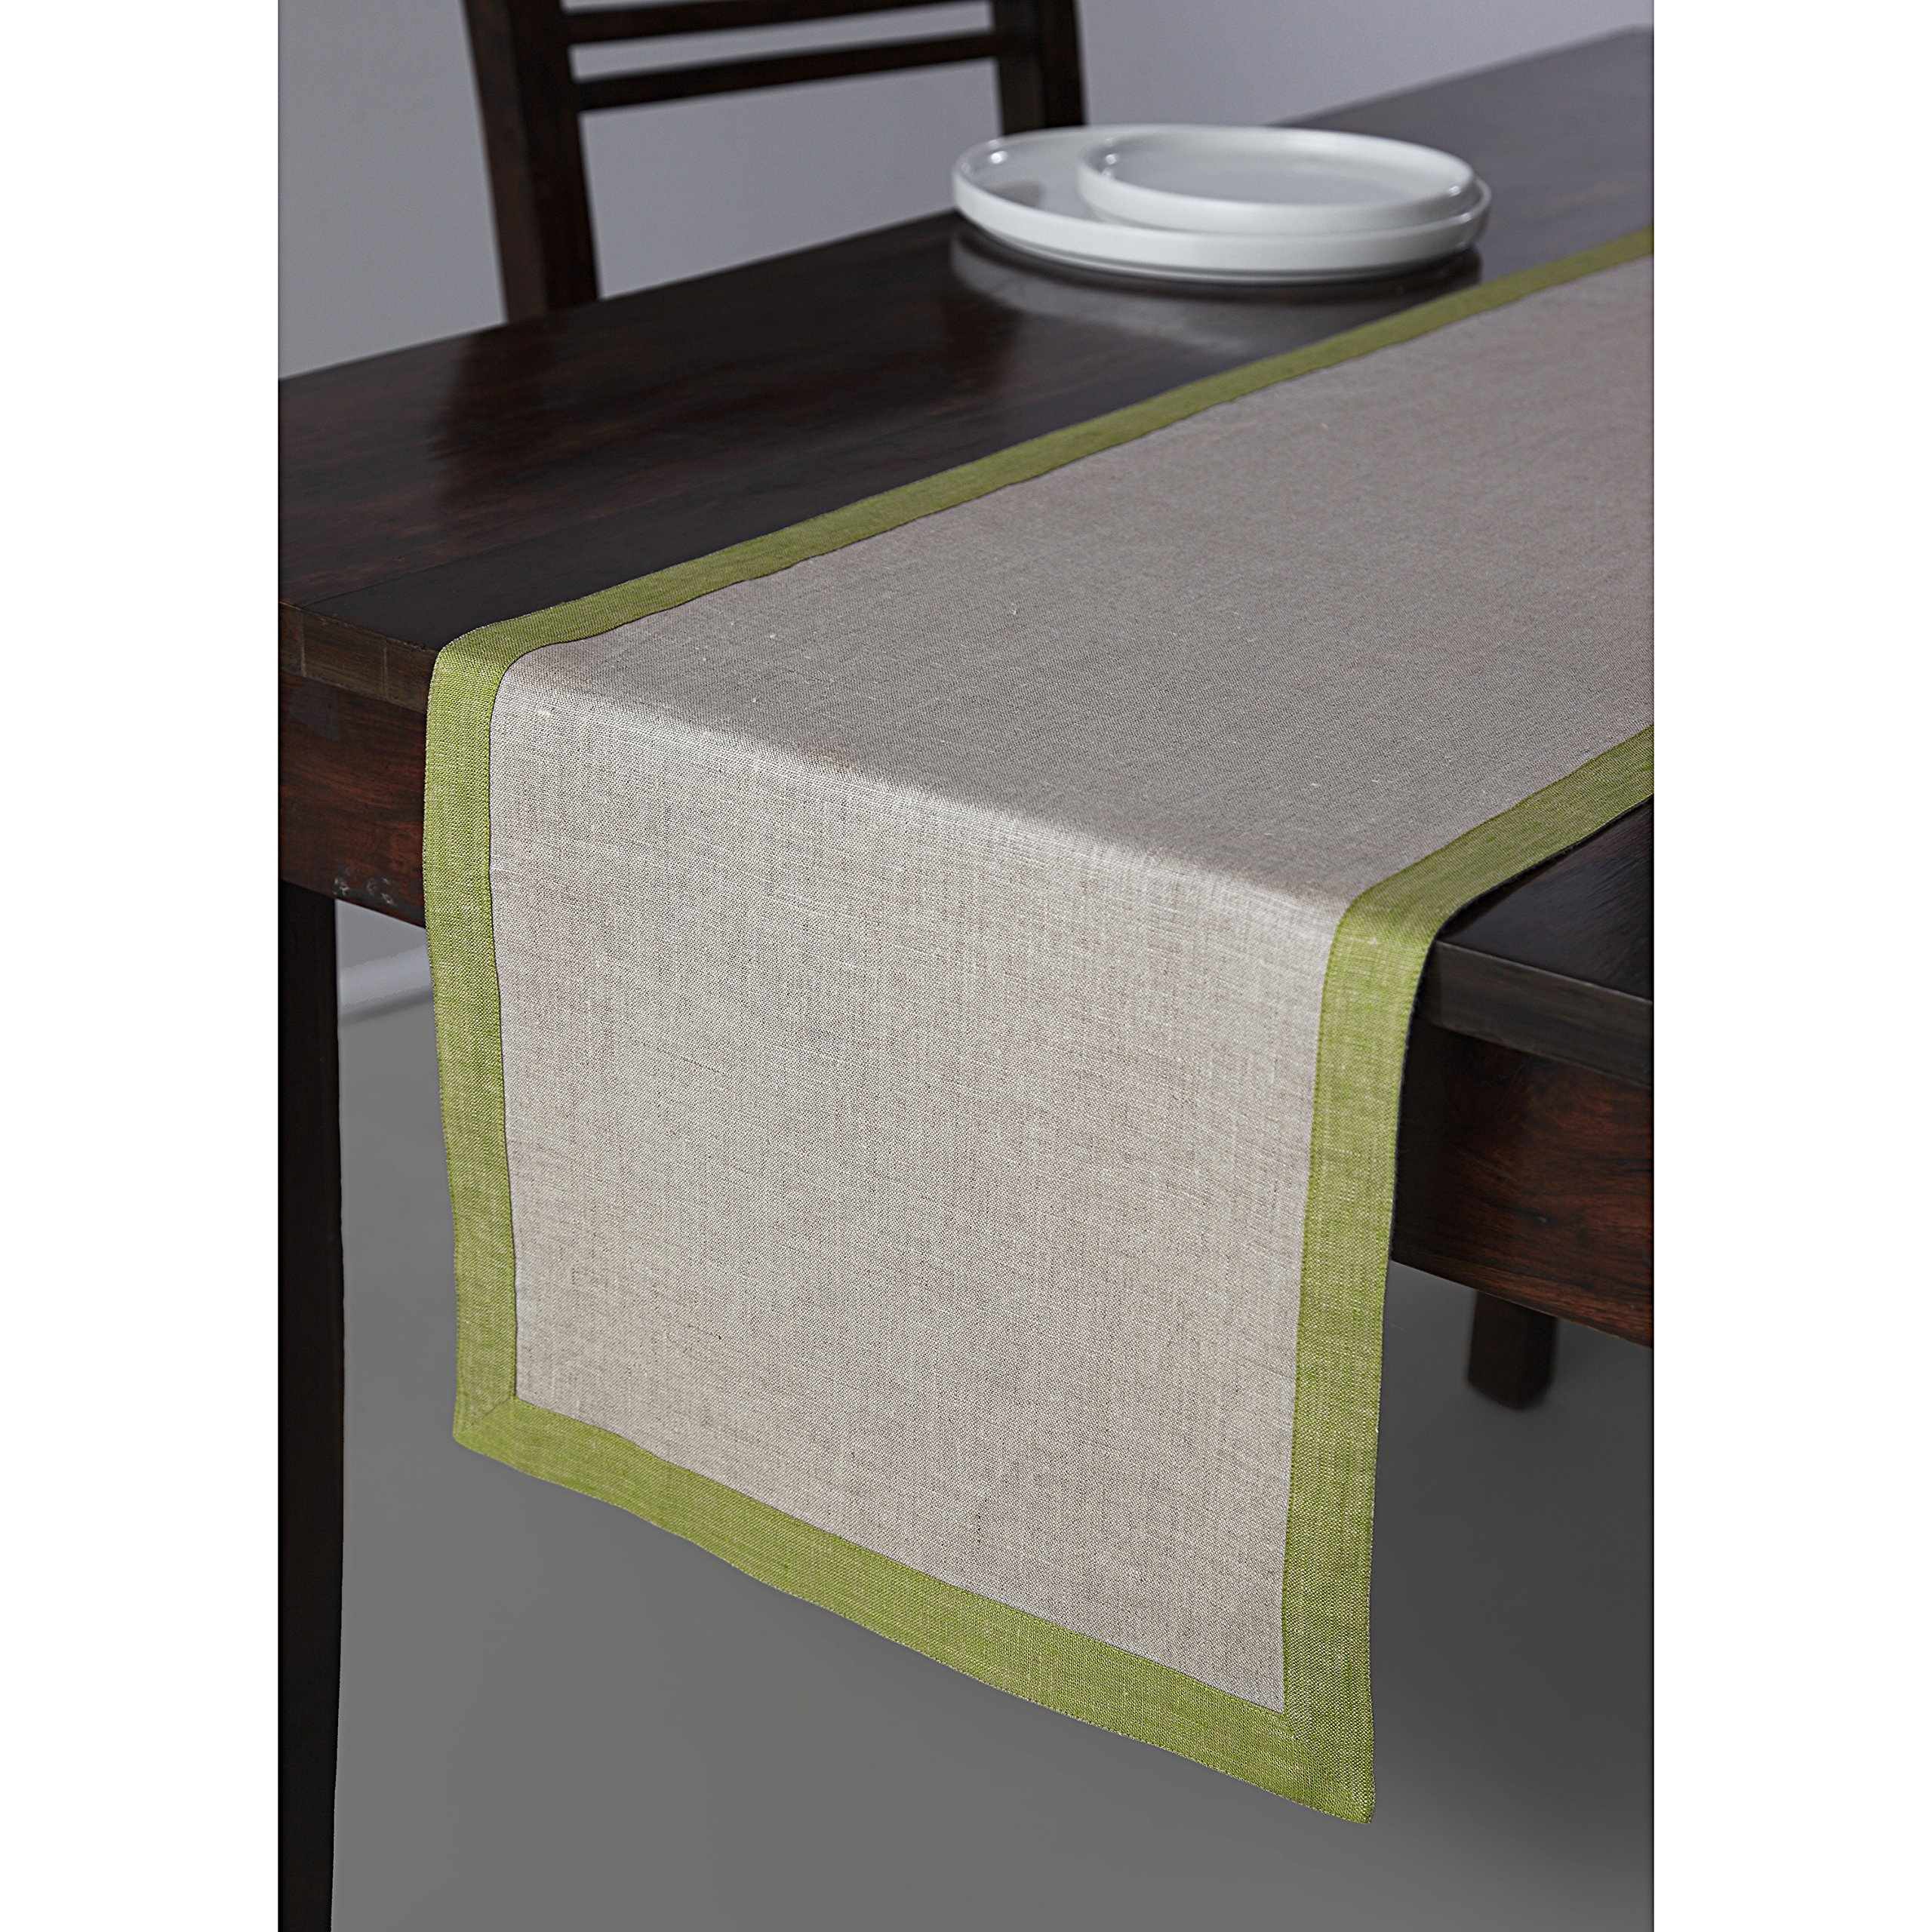 Solino Home Linen Table Runner - 14 x 48 Inch, Natural Olive Rectangular Runner - 100% European Flax, Concordia